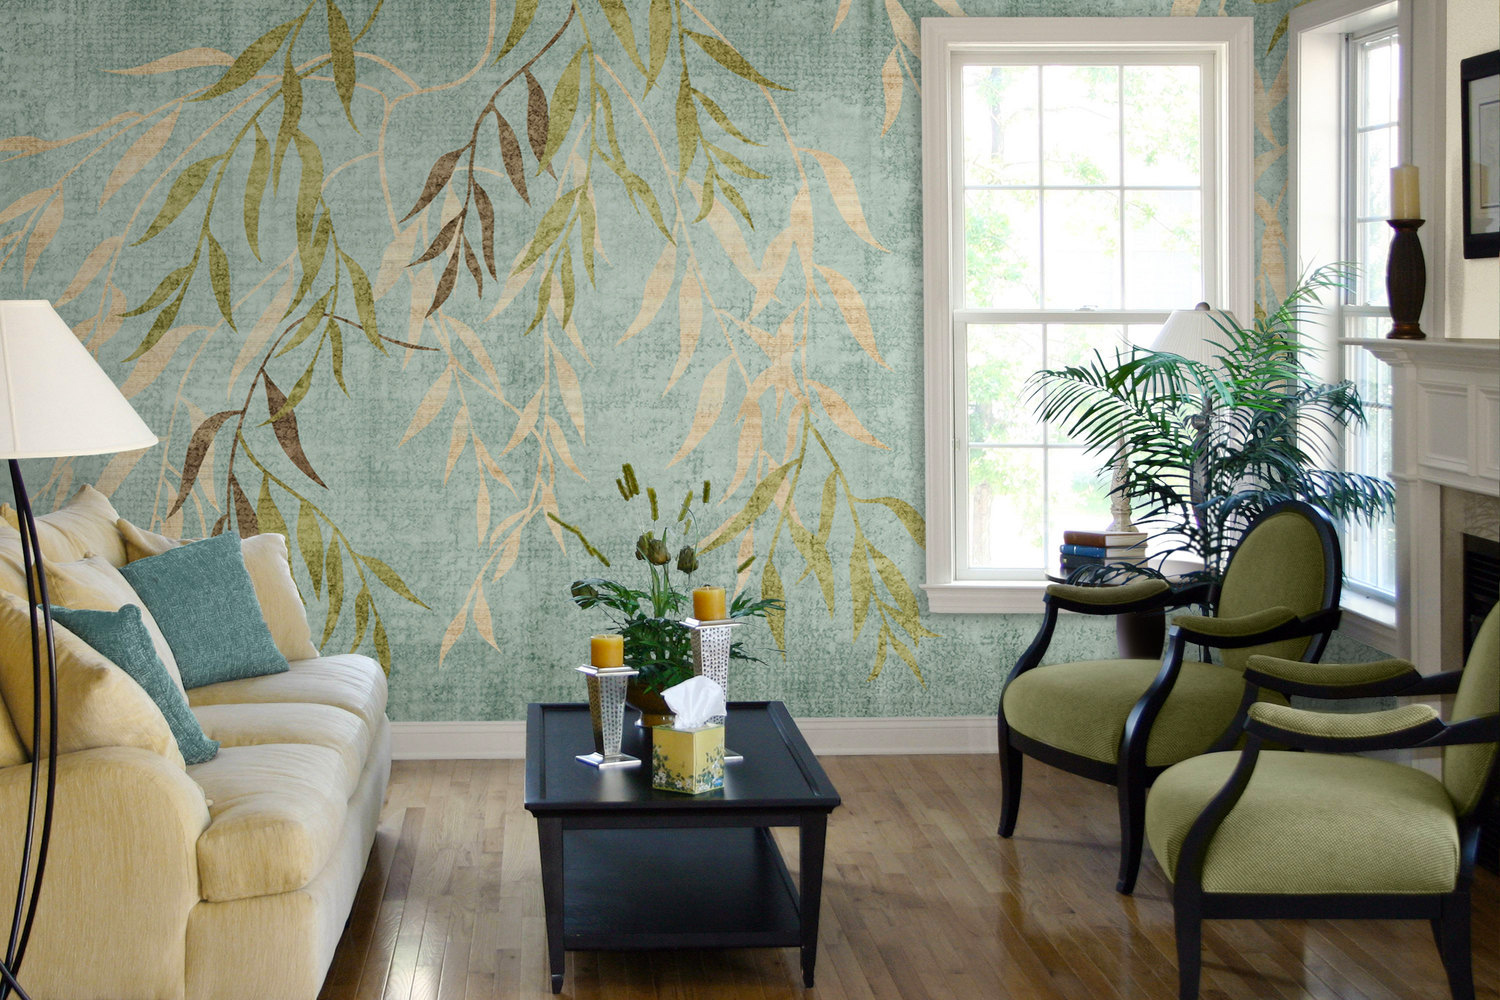 wallcovering-ideas-with-natural-wall-muralsfor-wall-decoration-ideas-for-living-room-with-hardwood-flooring